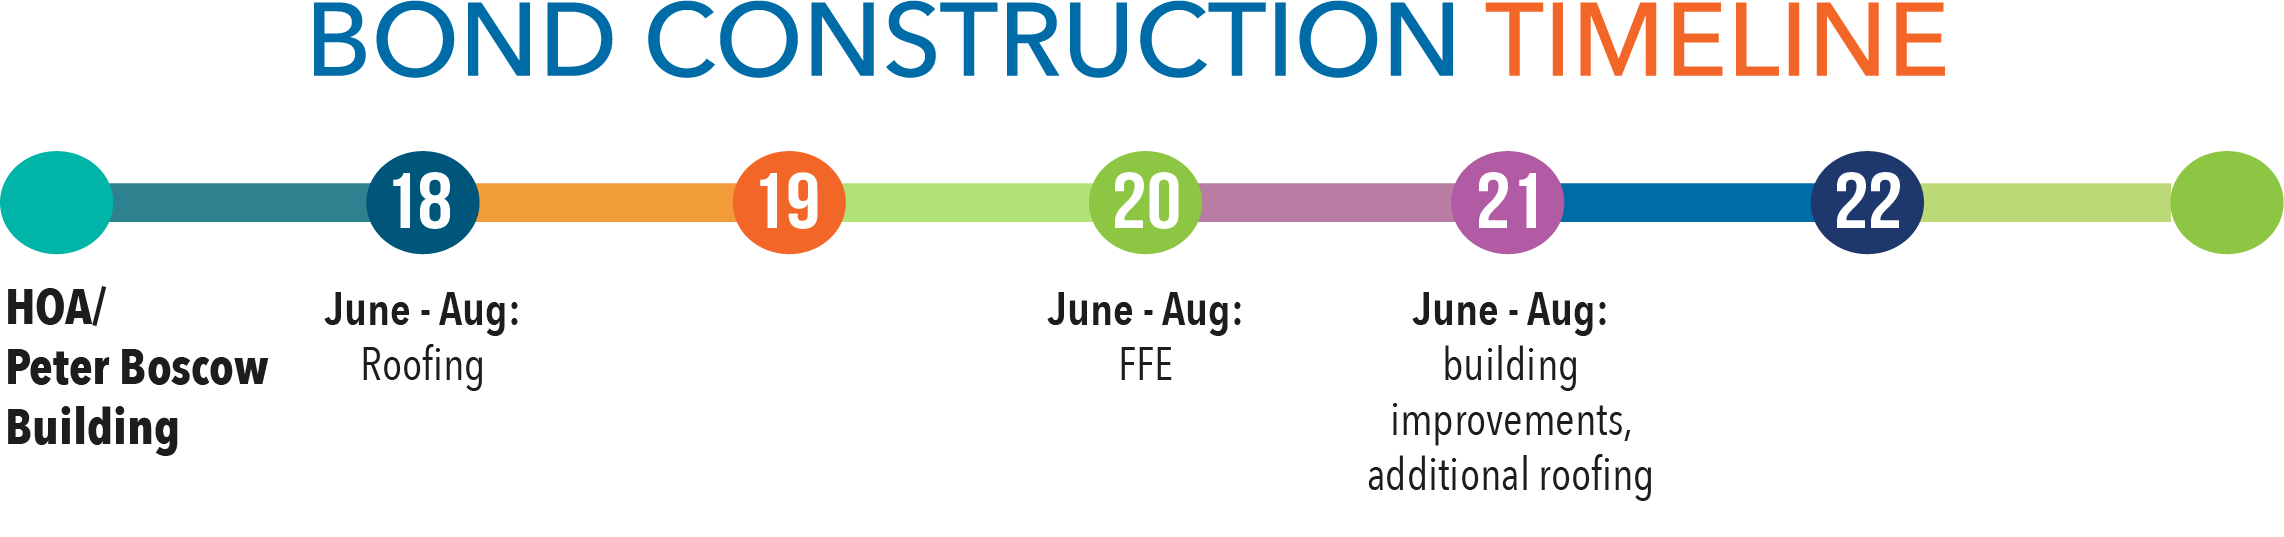 Bond construction timeline - HOA